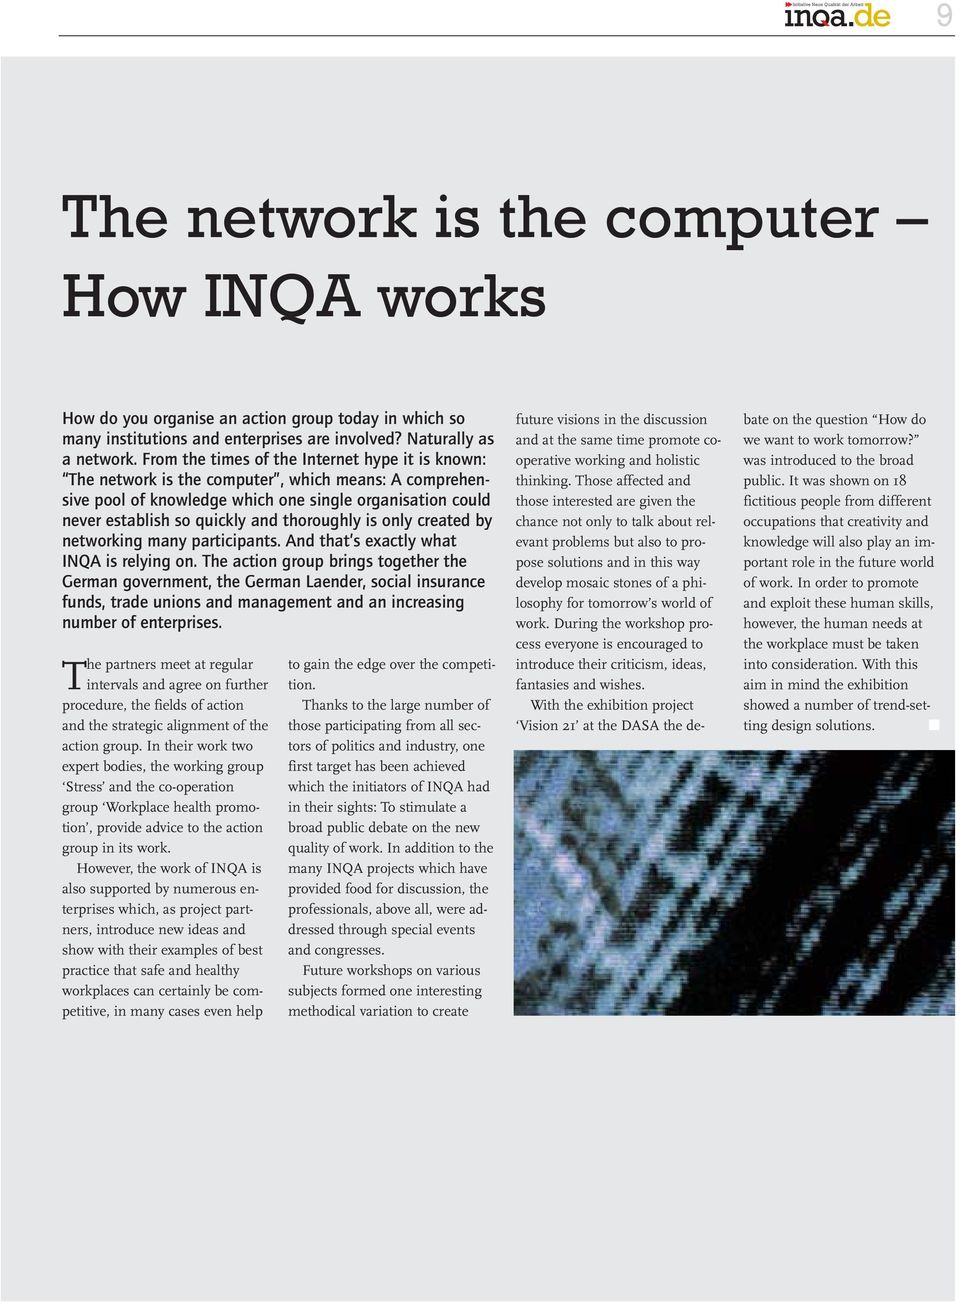 thoroughly is only created by networking many participants. And that s exactly what INQA is relying on.